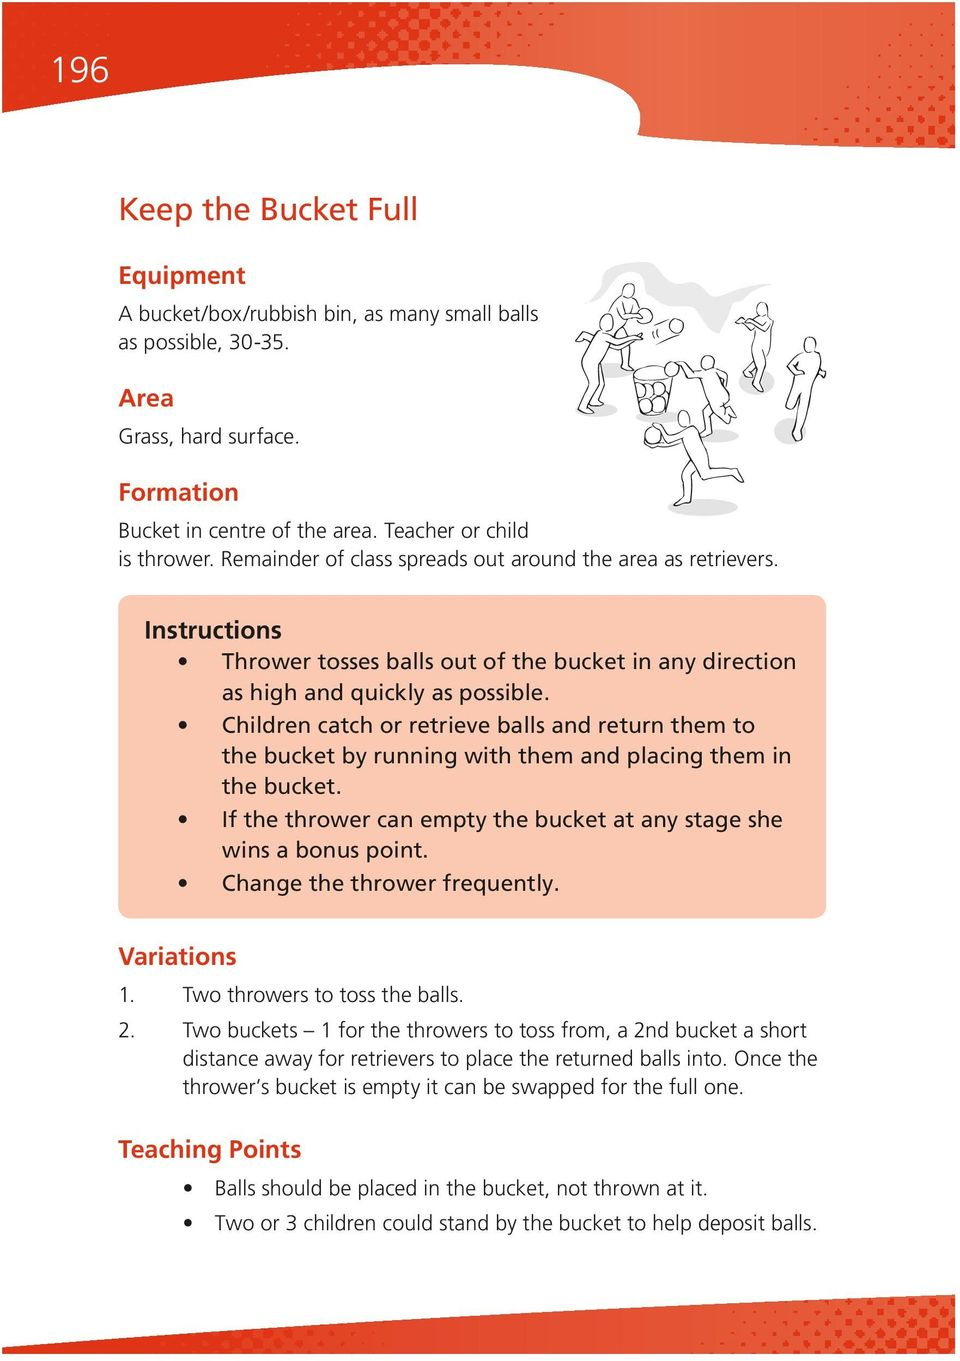 Children catch or retrieve balls and return them to the bucket by running with them and placing them in the bucket. If the thrower can empty the bucket at any stage she wins a bonus point.